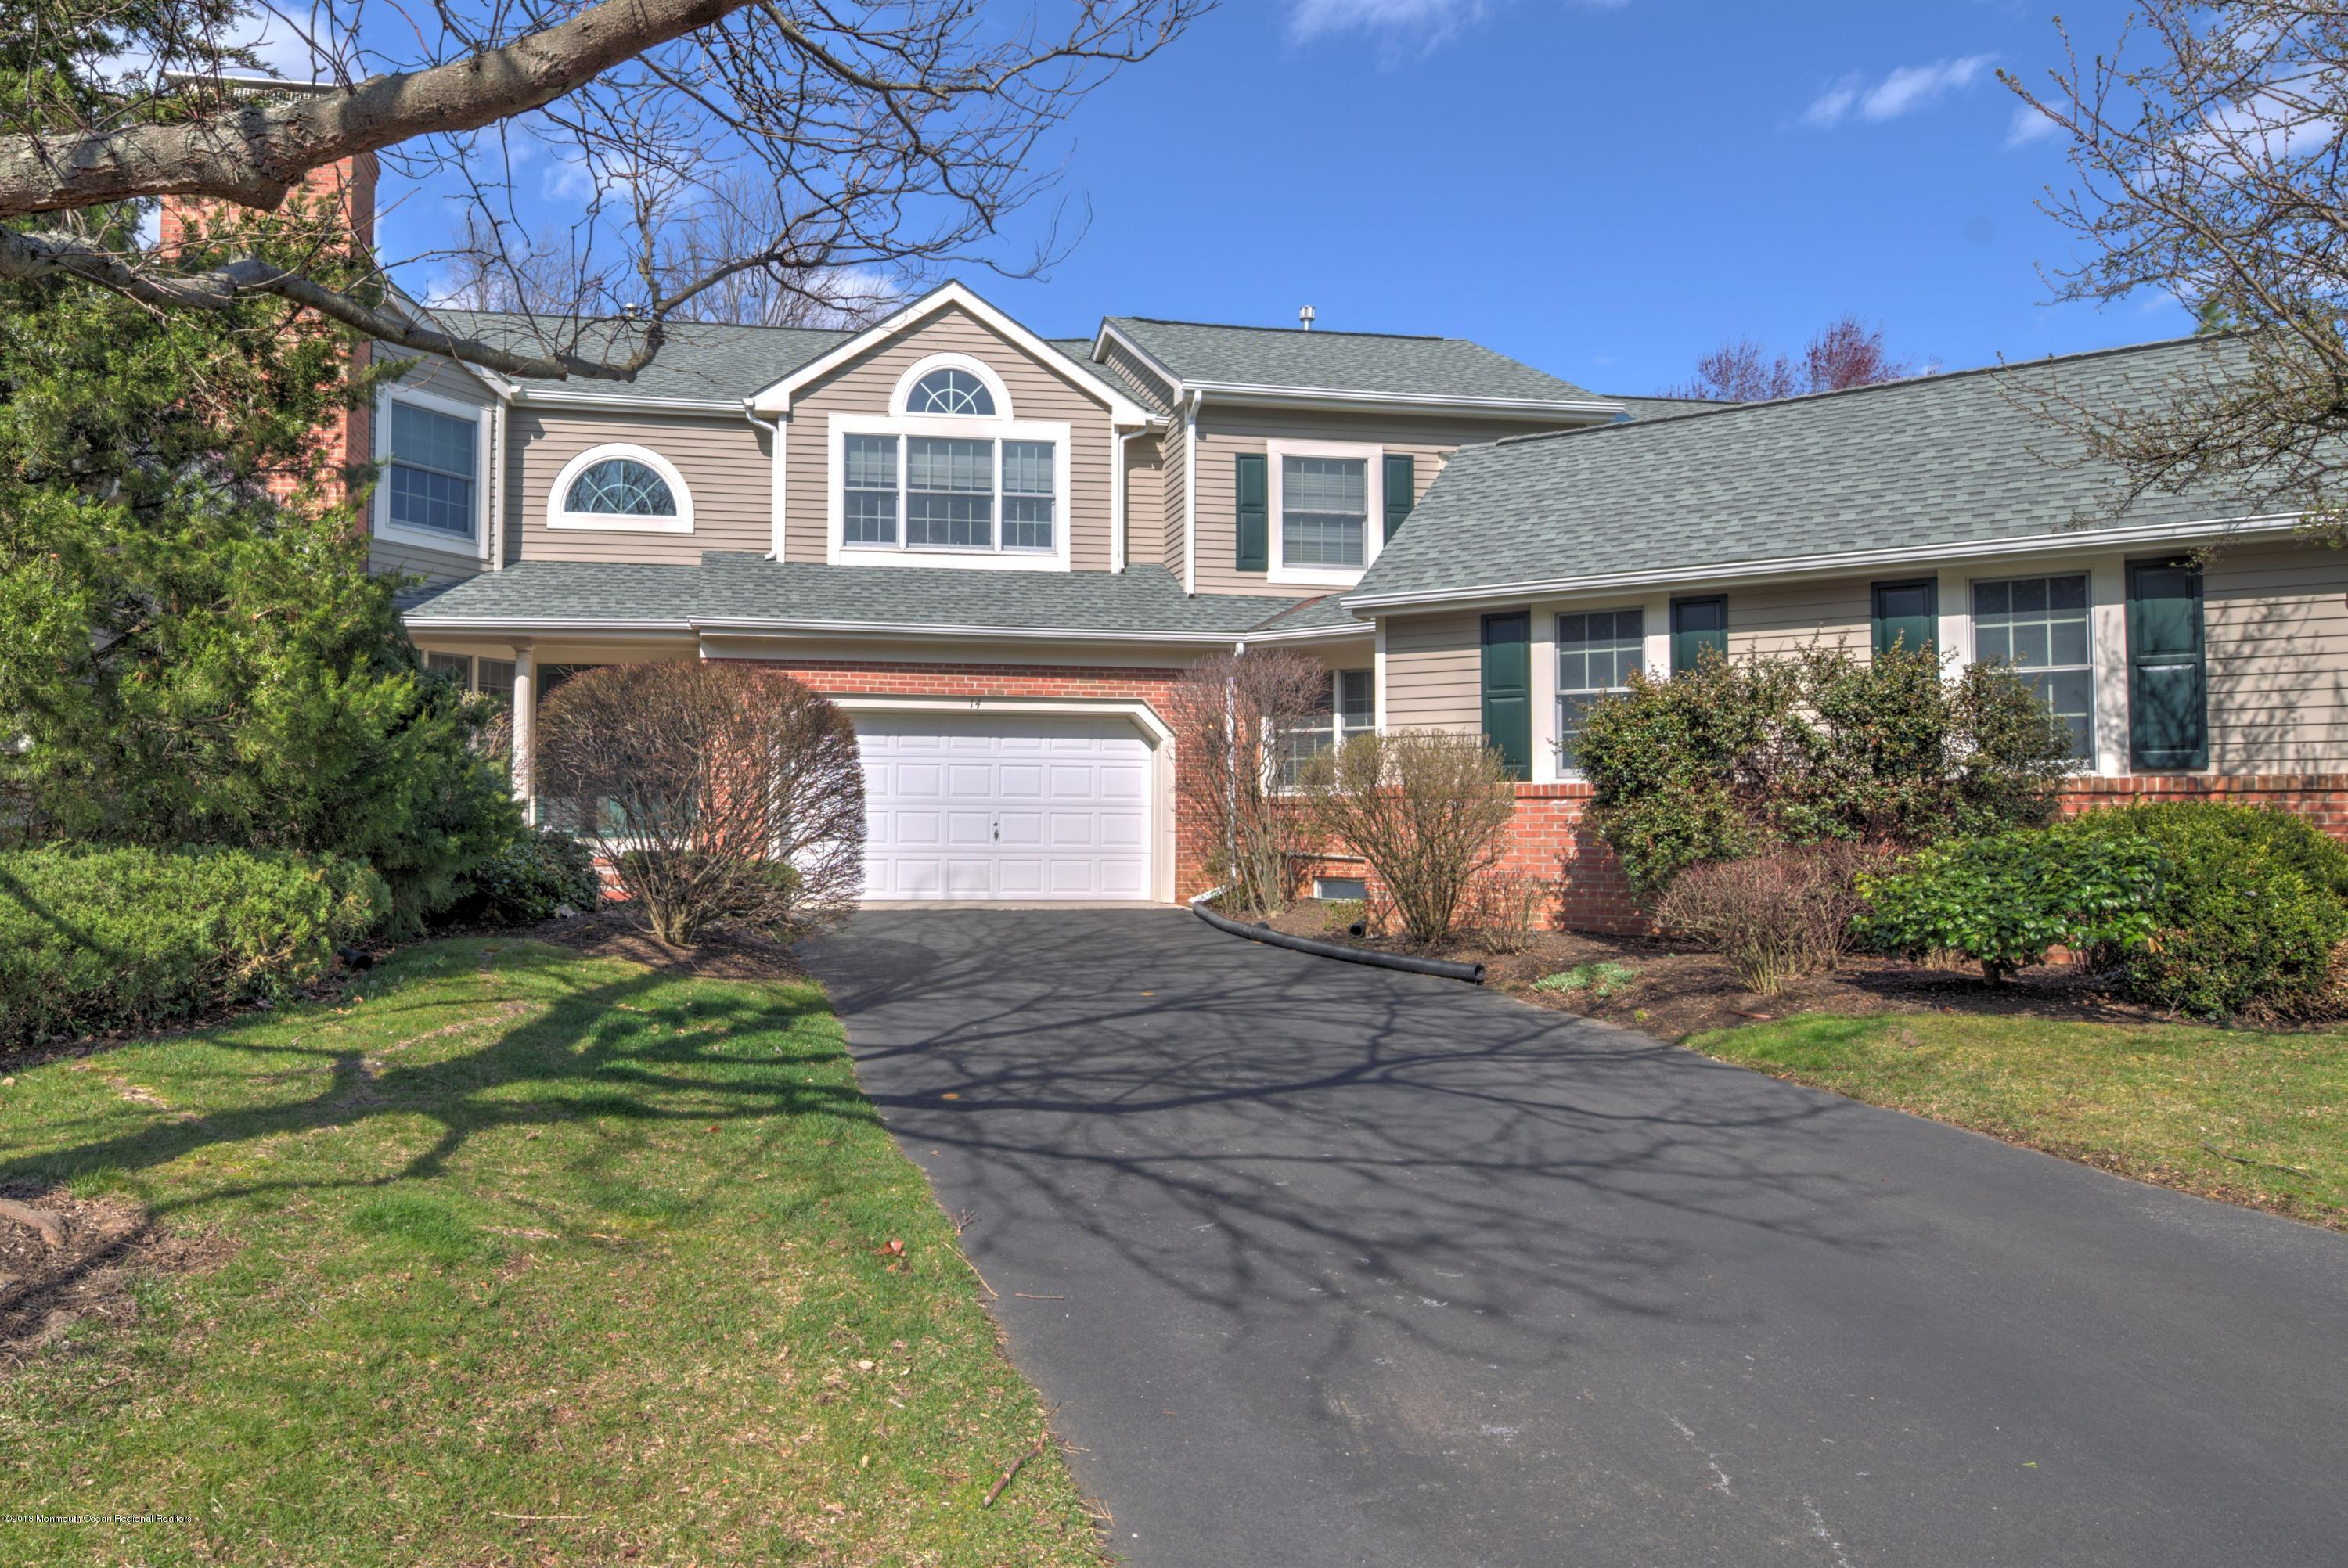 14 QUAKER LANE, LITTLE SILVER, NJ 07739